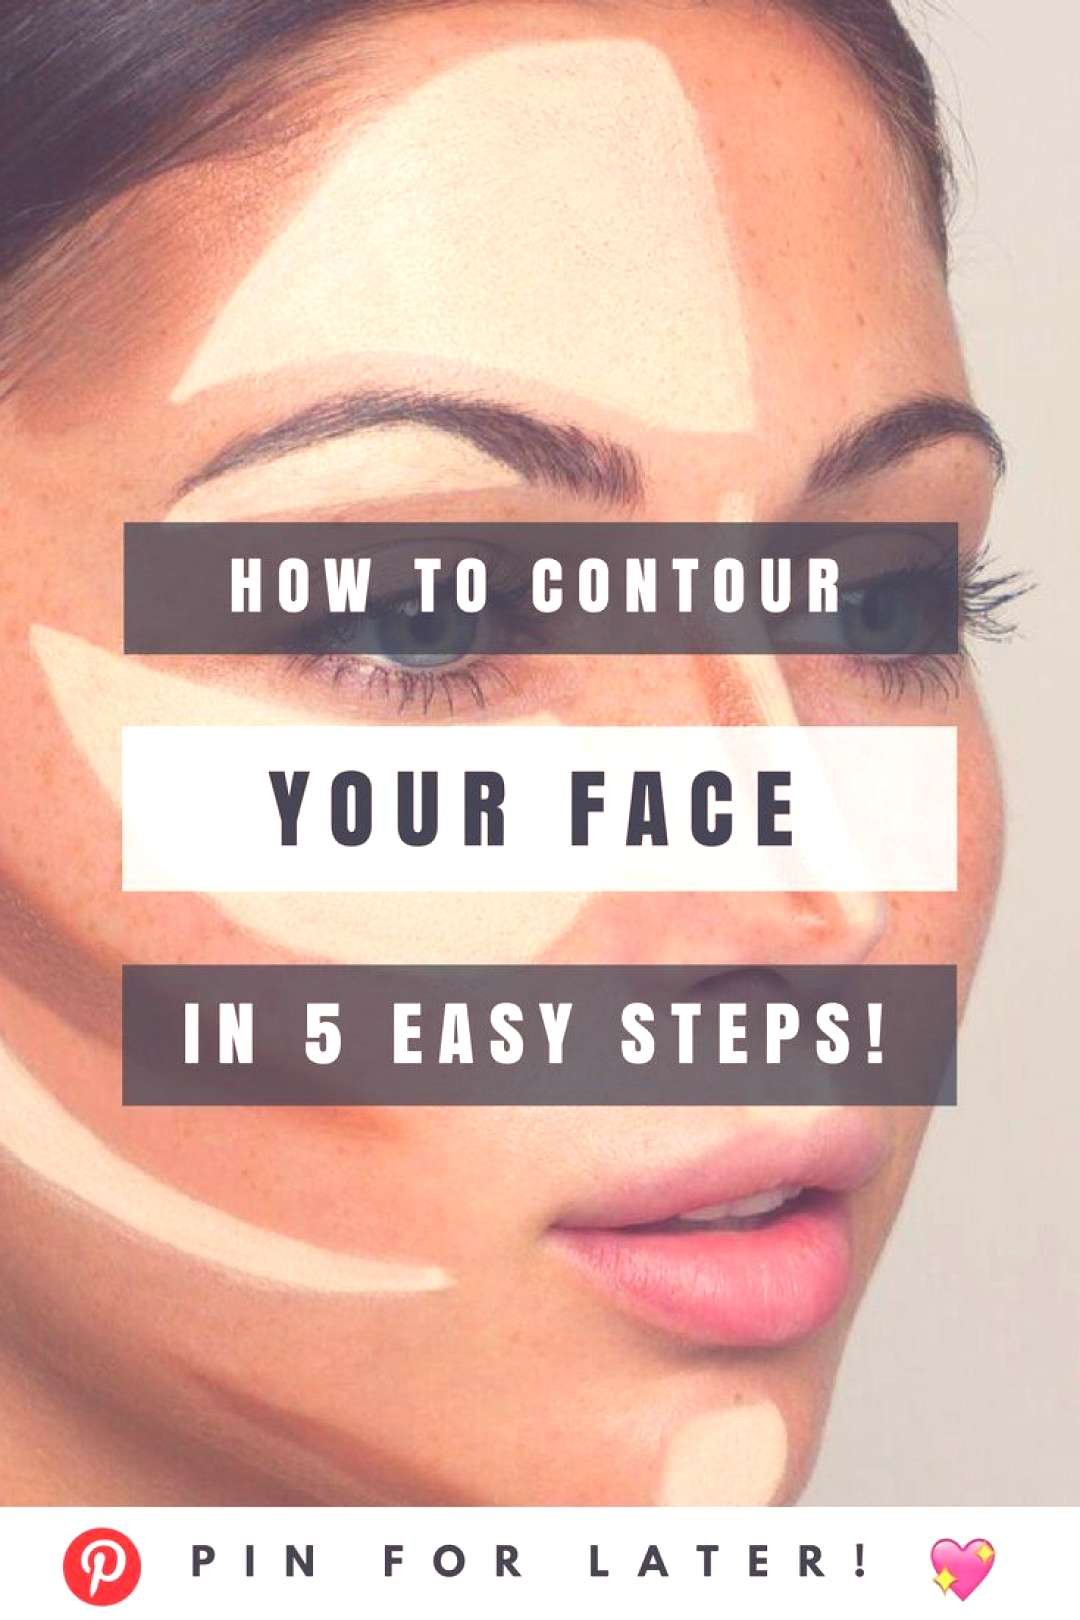 Contouring incorrectly can completely ruin your look.  Watch this short tutorial for properly cont